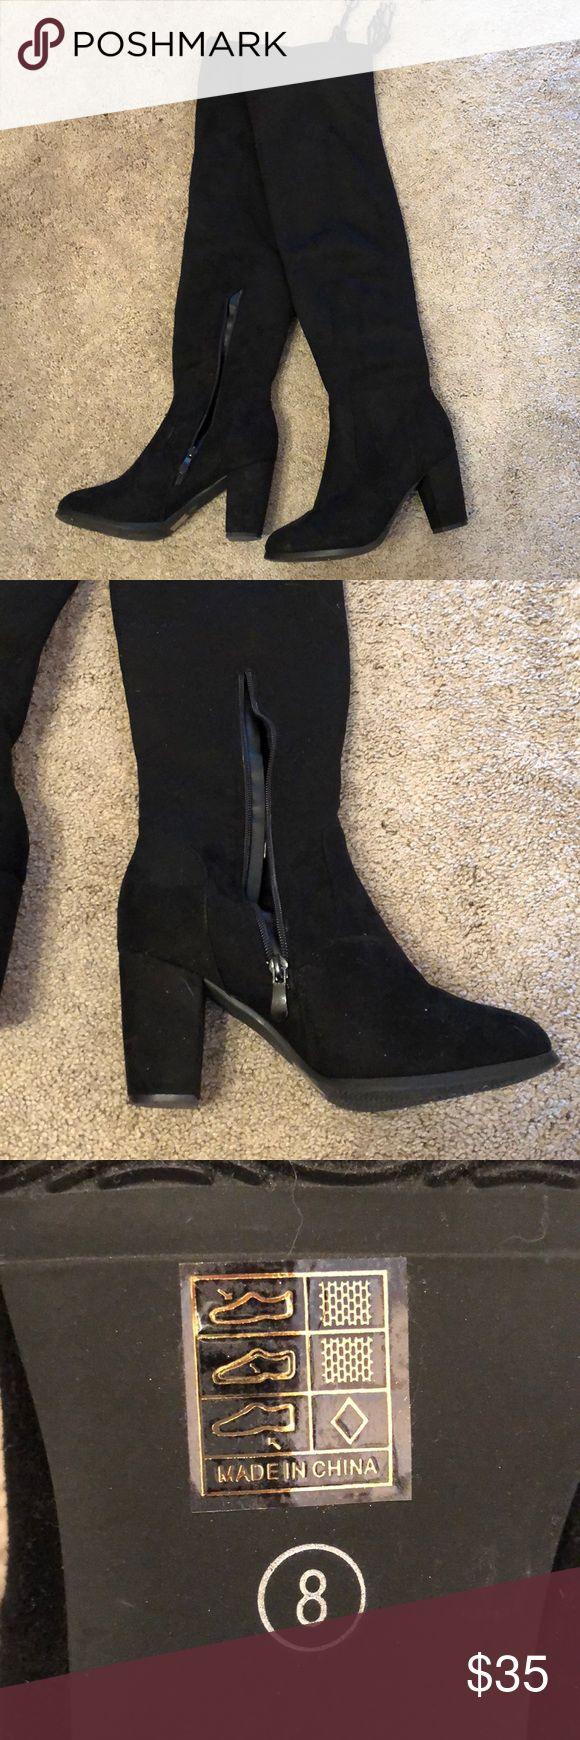 Over the knee black boots Black suede boots, go above the knee with tie on top Worn once These are super warm but I have very skinny calves and they just looked too big! Shoes Over the Knee Boots